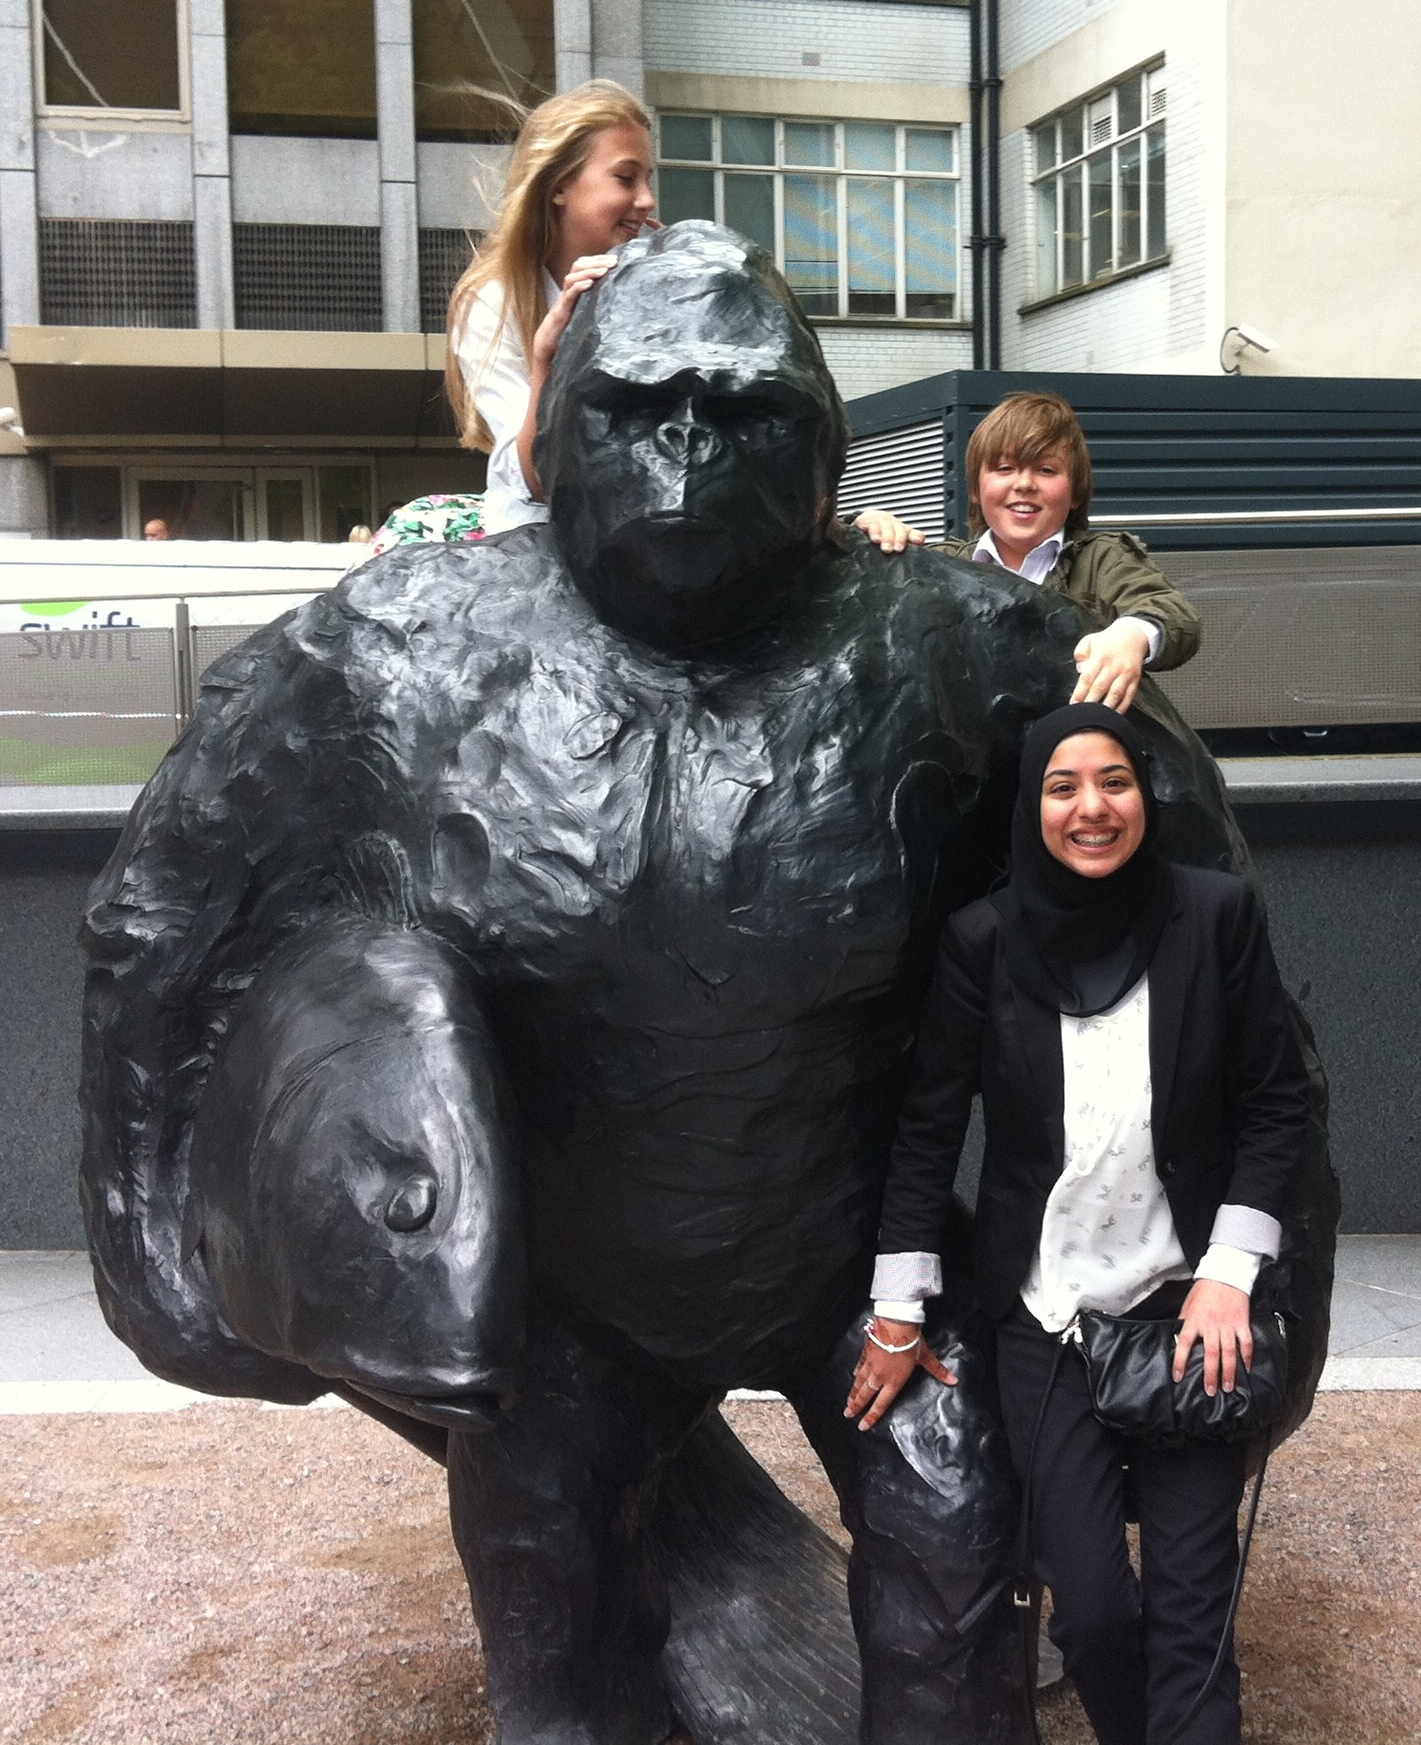 L to R - Fiona, Ben and Fatema enjoy the Gorilla with his Fish.